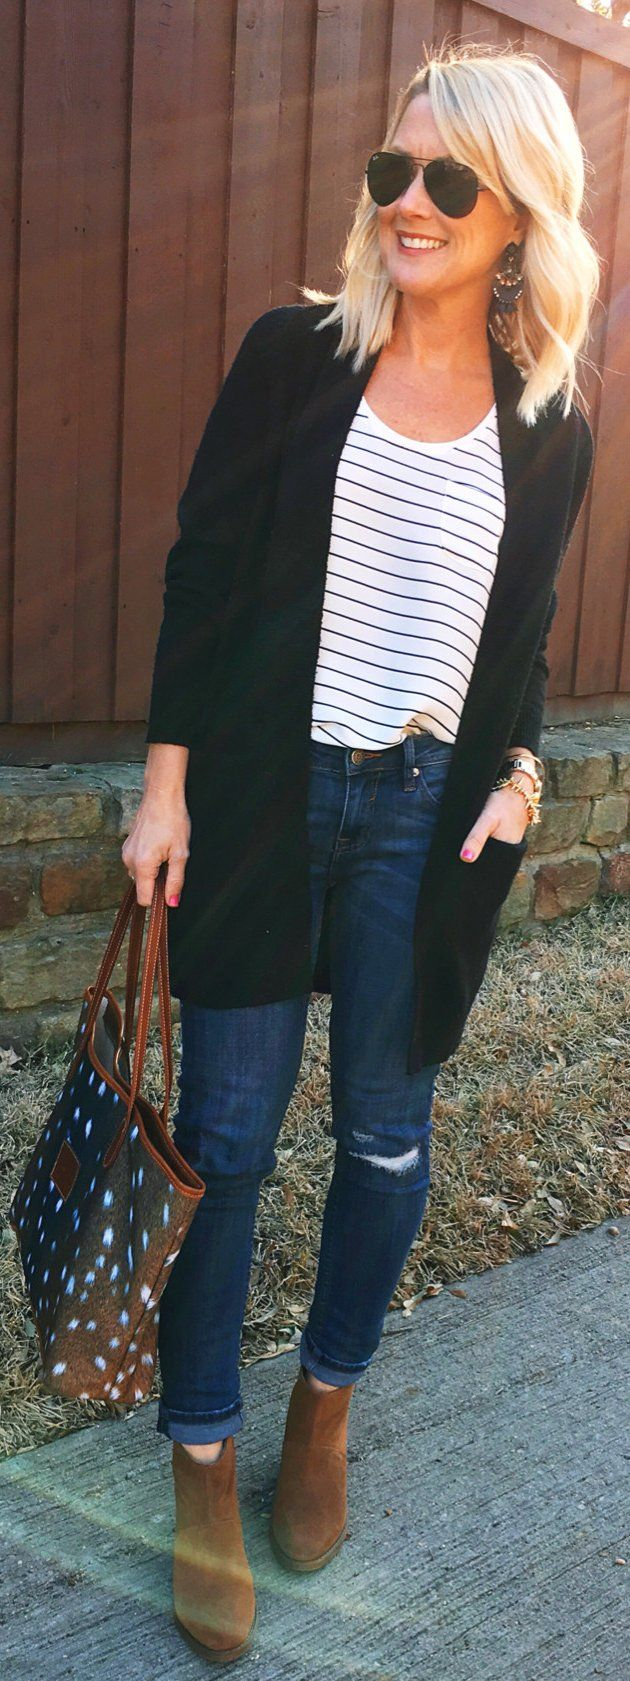 #winter #fashion /  Black Cardigan / White Striped Top / Ripped Skinny Jeans / Brown Suede Booties